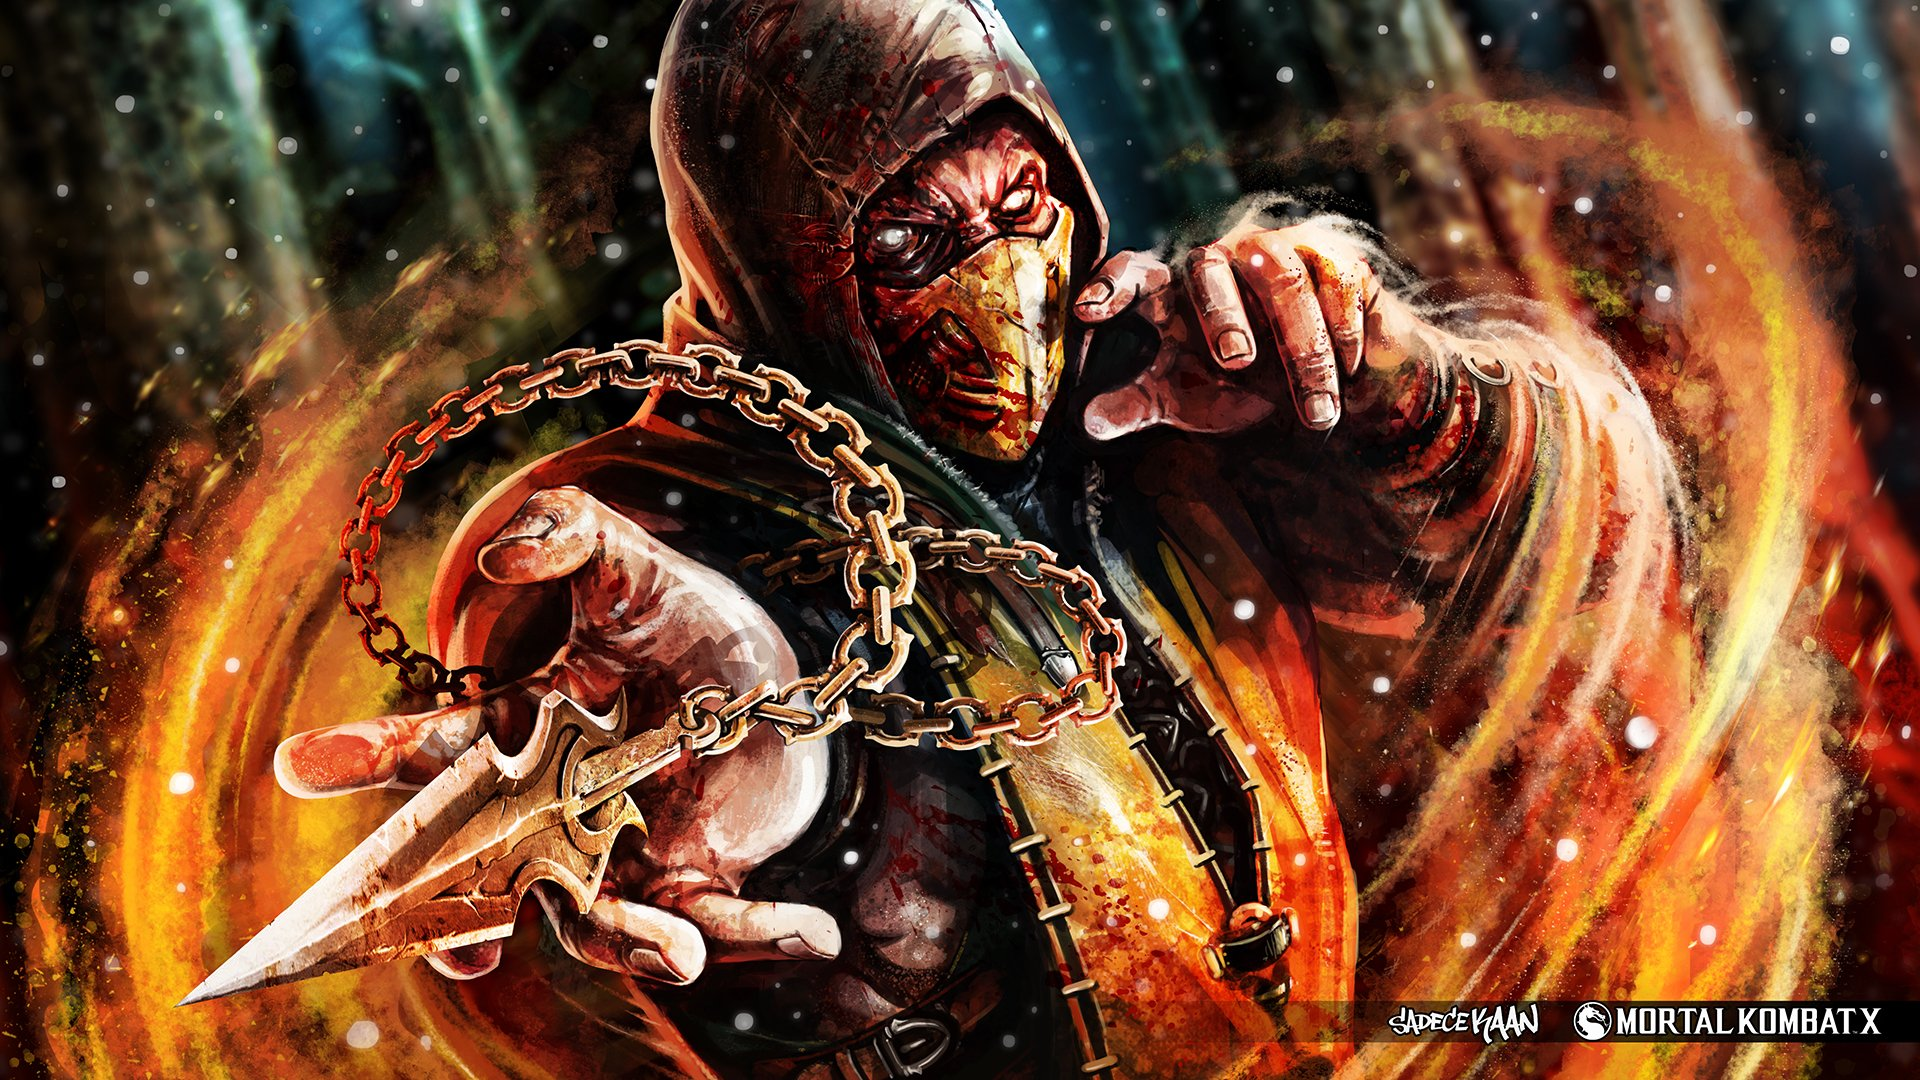 70 mortal kombat x hd wallpapers | background images - wallpaper abyss